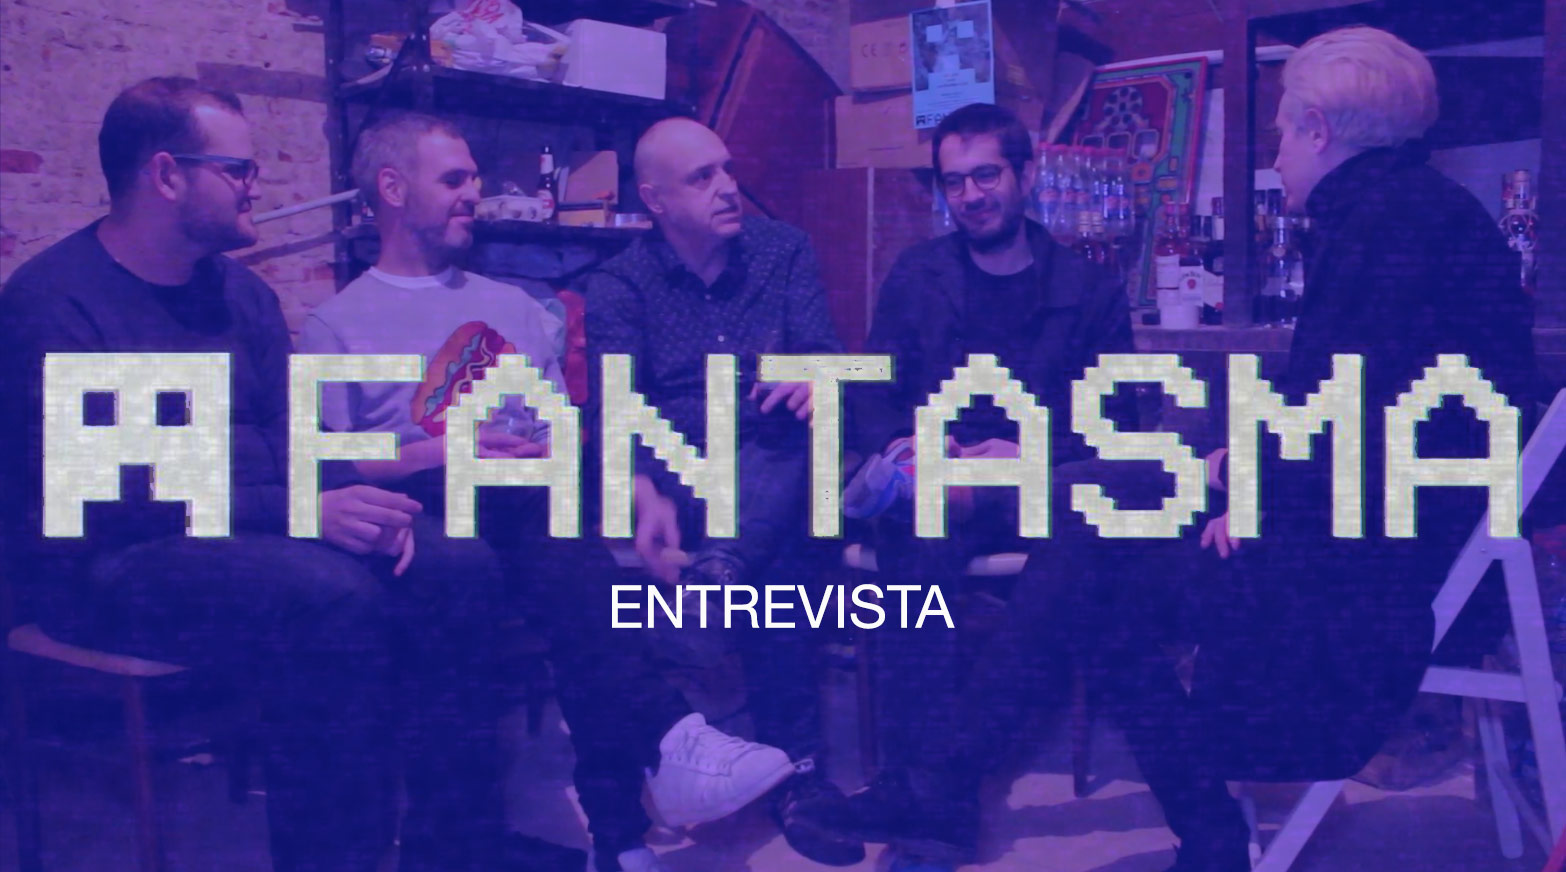 Fiestas Fantasma - entrevista channel video one